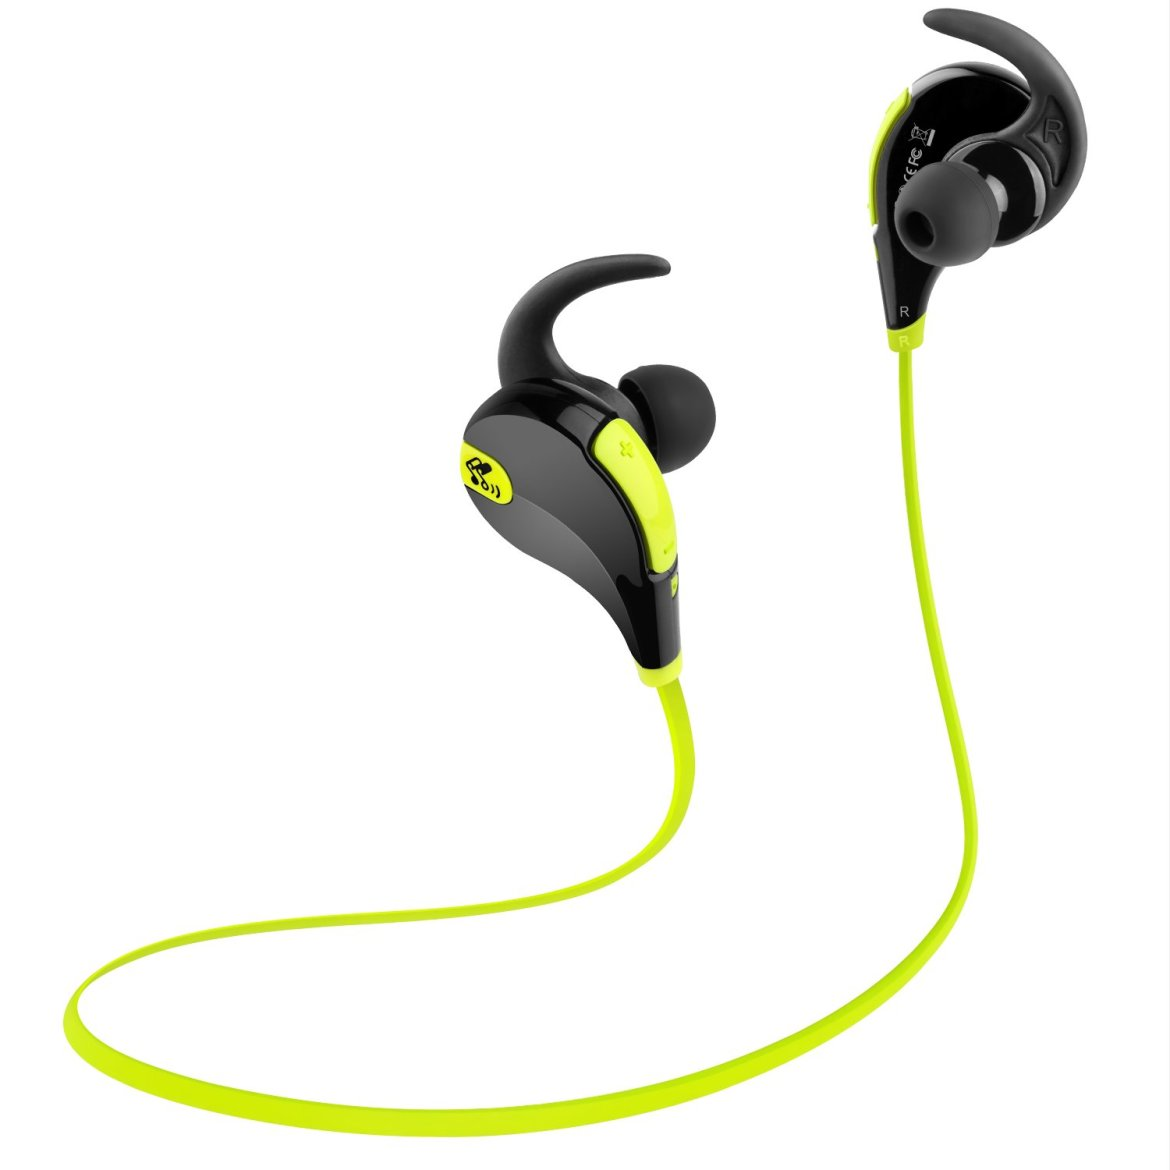 Image result for Sound Peats Bluetooth earphones:-